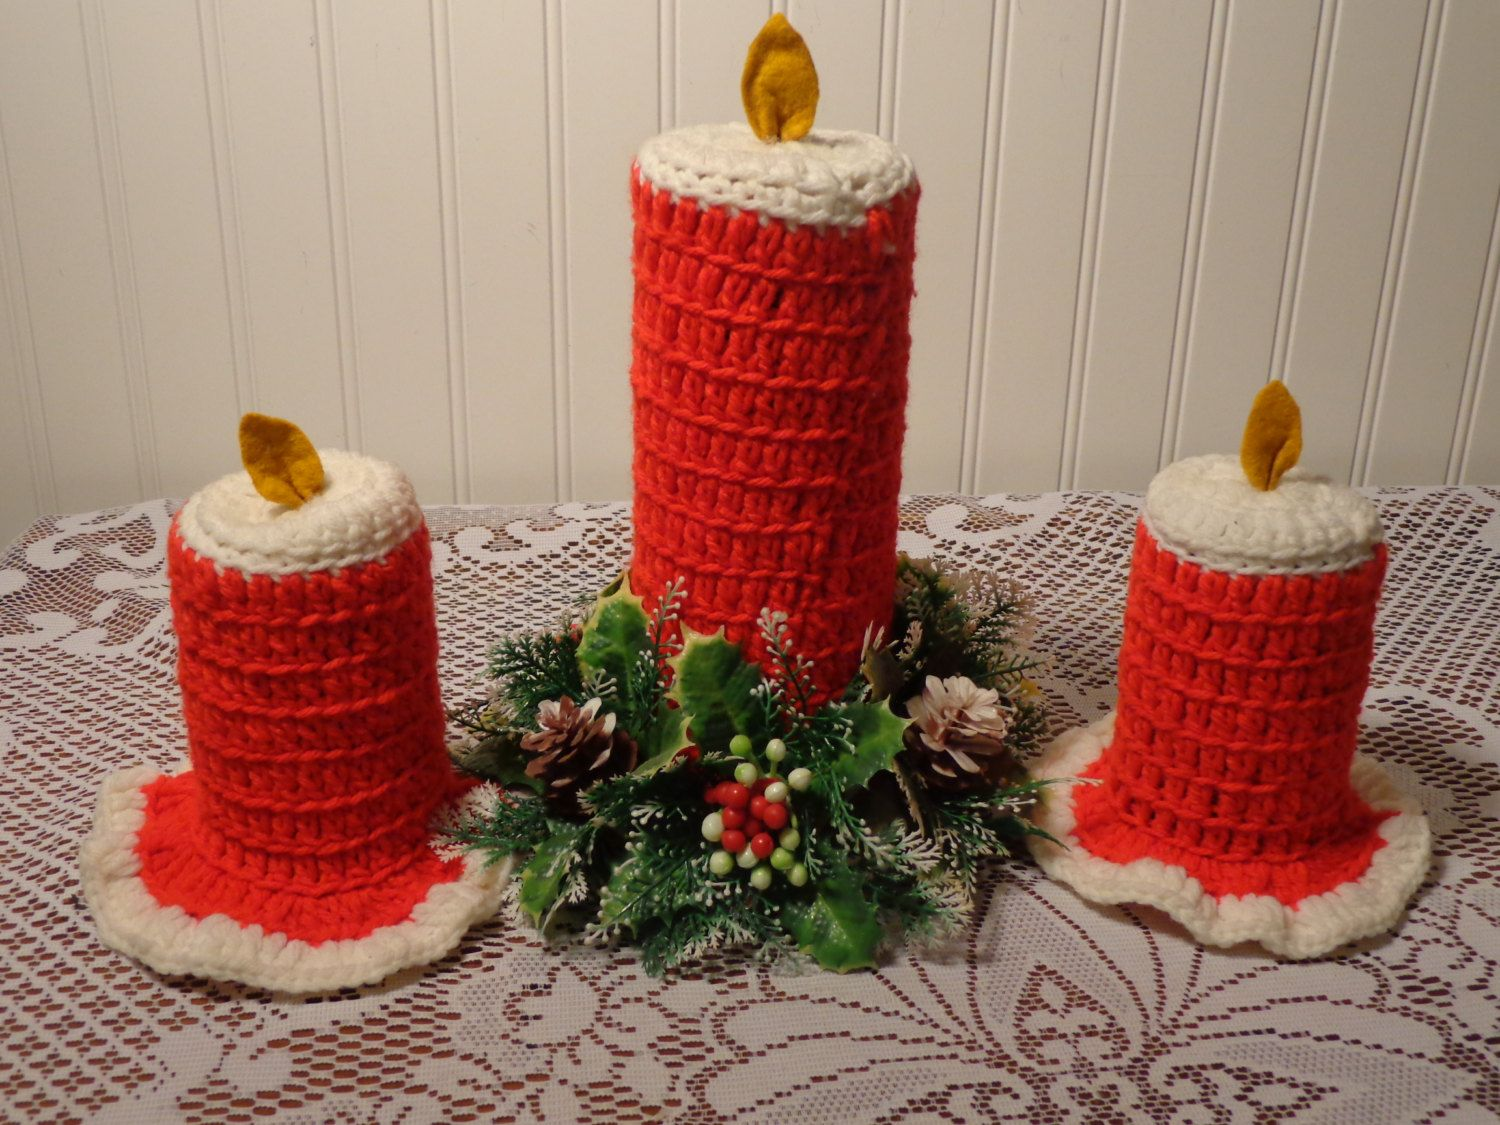 Vintage Christmas Yarn Candlesticks - Red Crochet Christmas ...